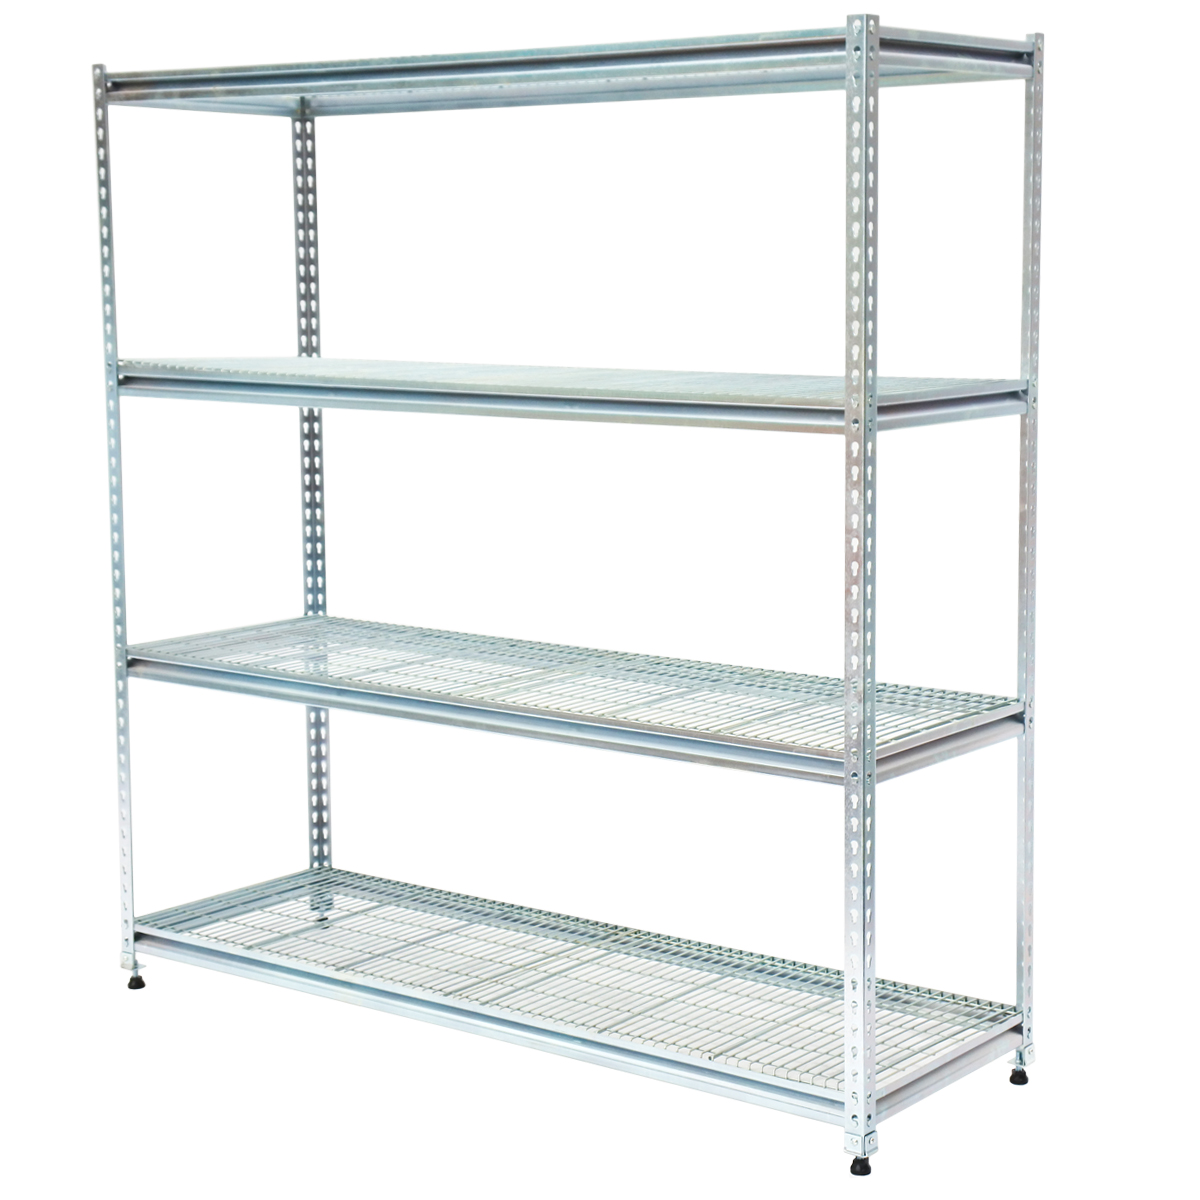 Coolroom Shelving